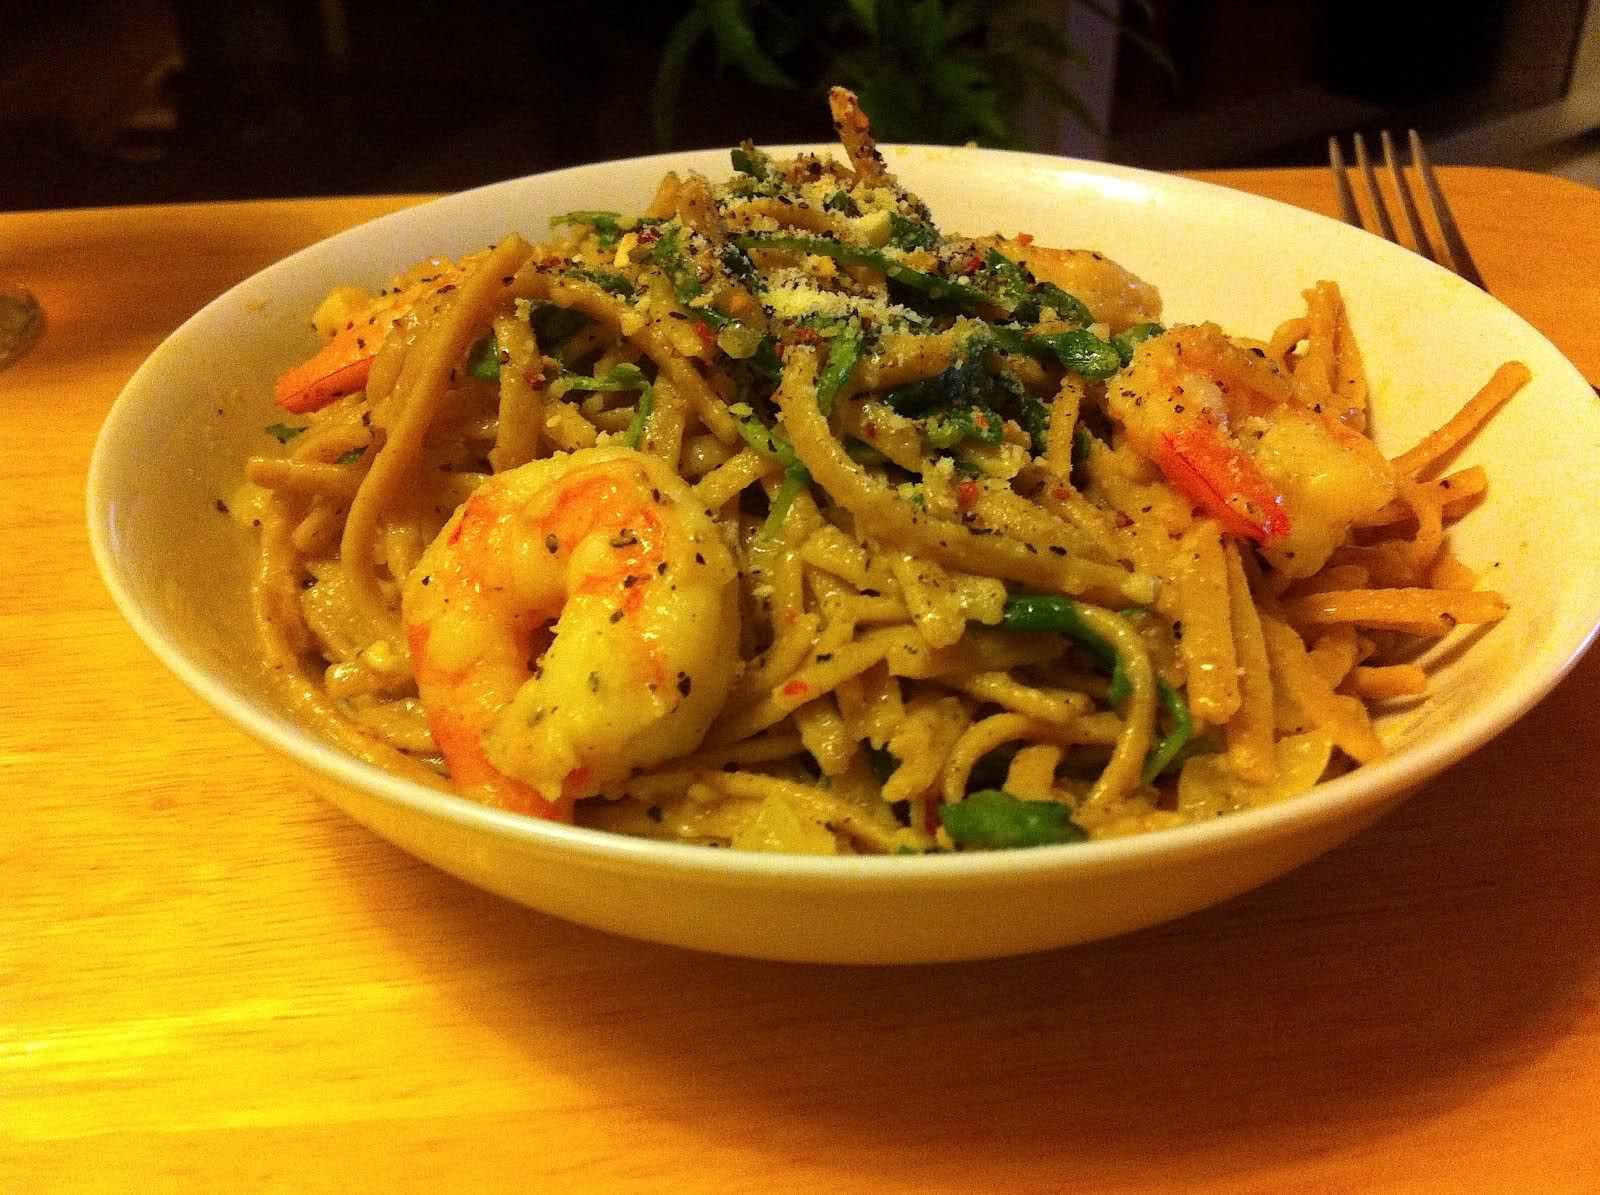 Lemon Shrimp Linguine with Arugula